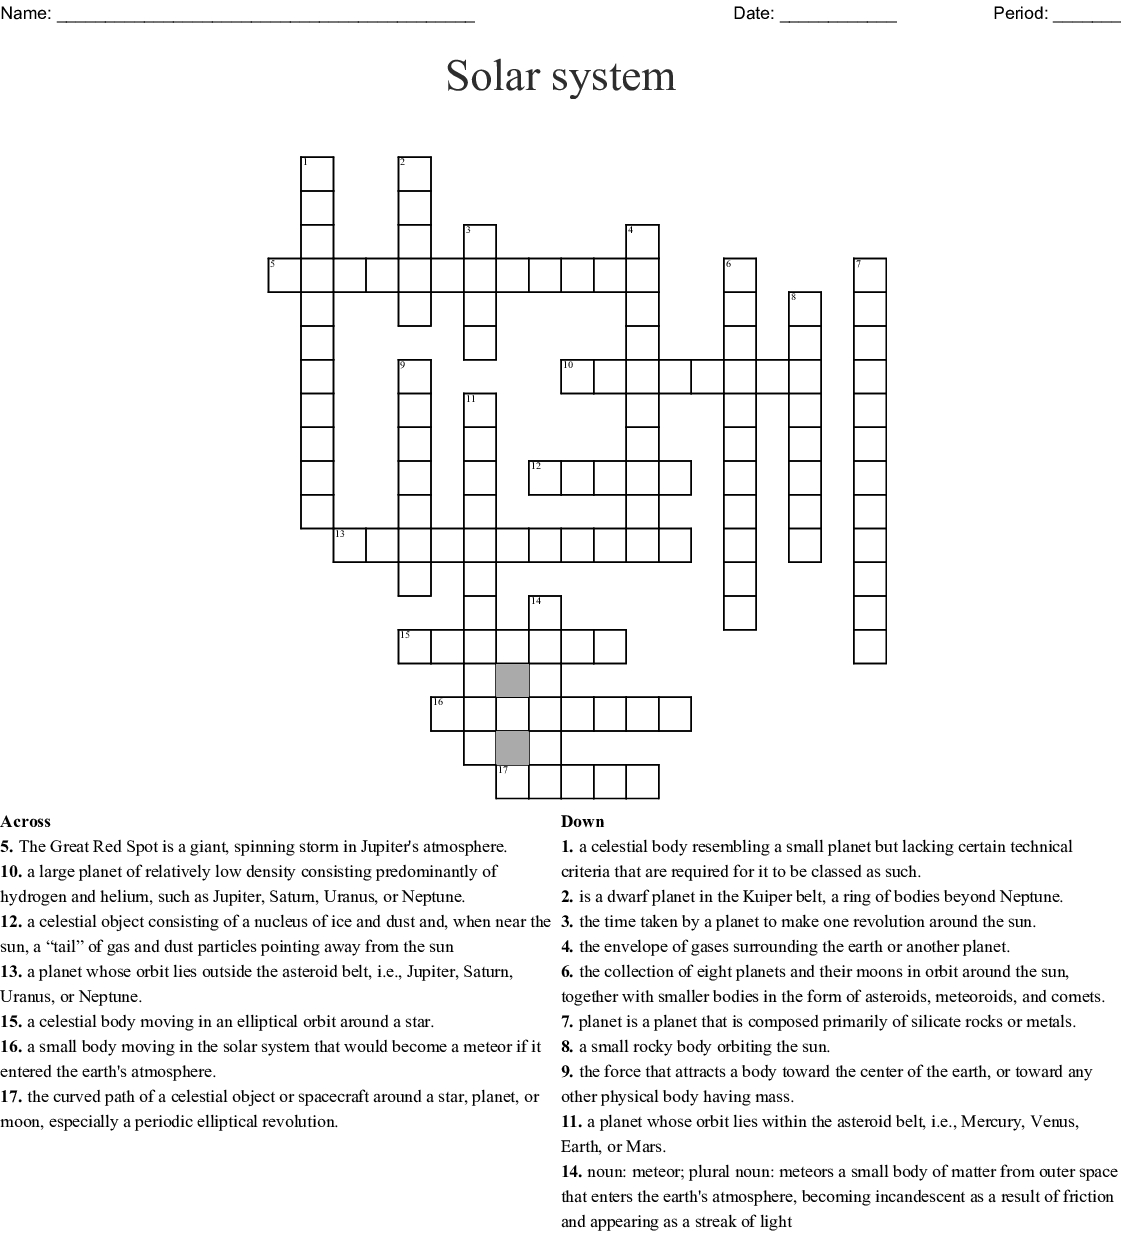 Solar System Crossword - Wordmint - Solar System Crossword Puzzle Printable